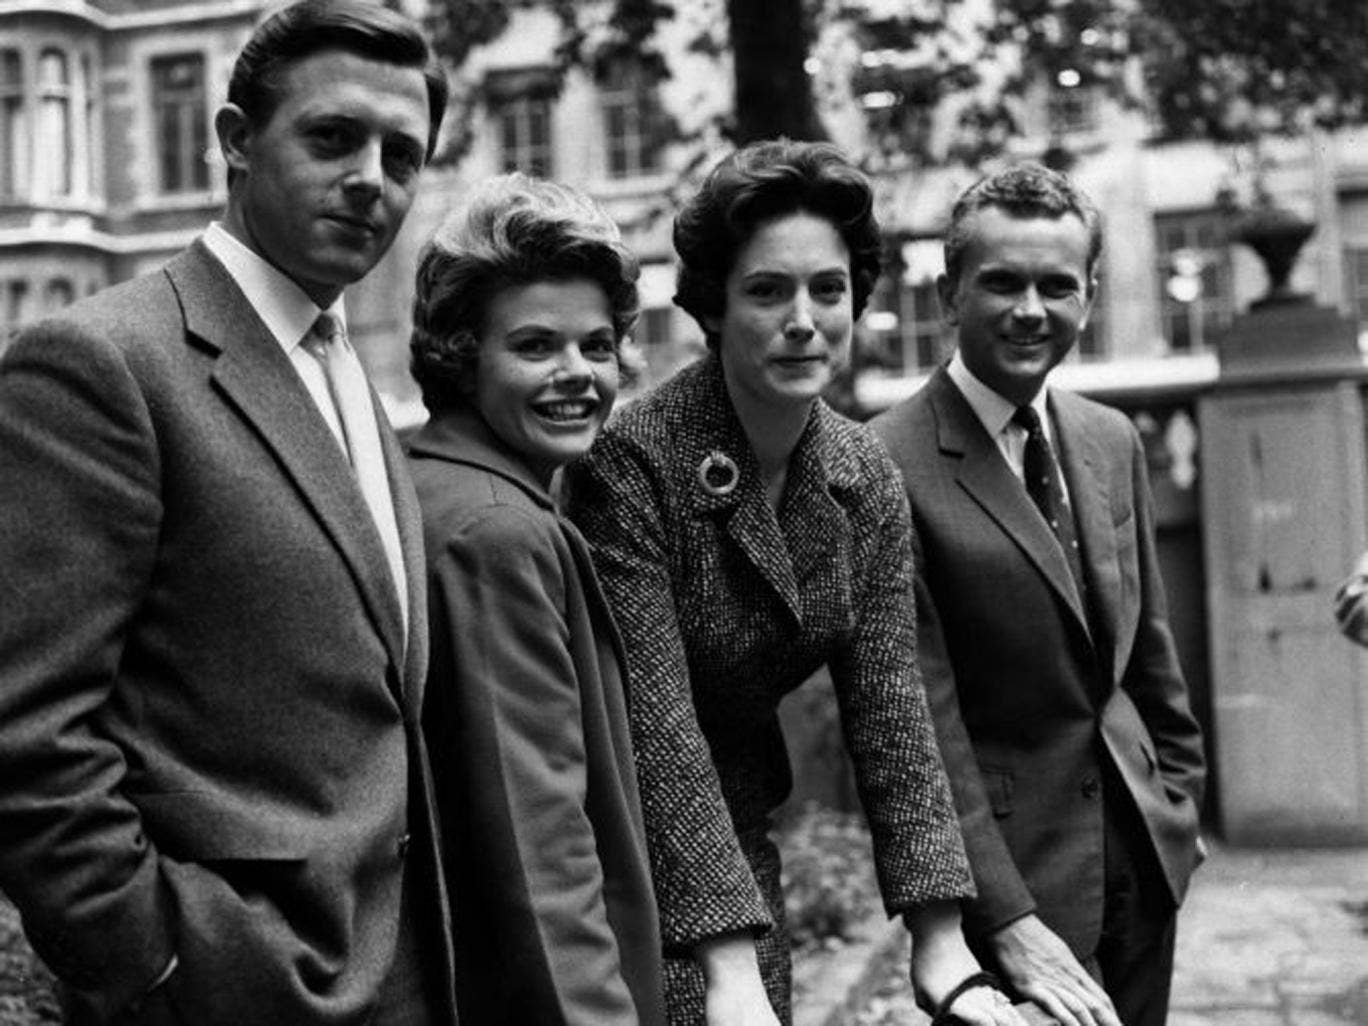 Kendall. right, in 1960 with BBC colleagues Michael Aspel, Judith Chalmers and Nan Winton